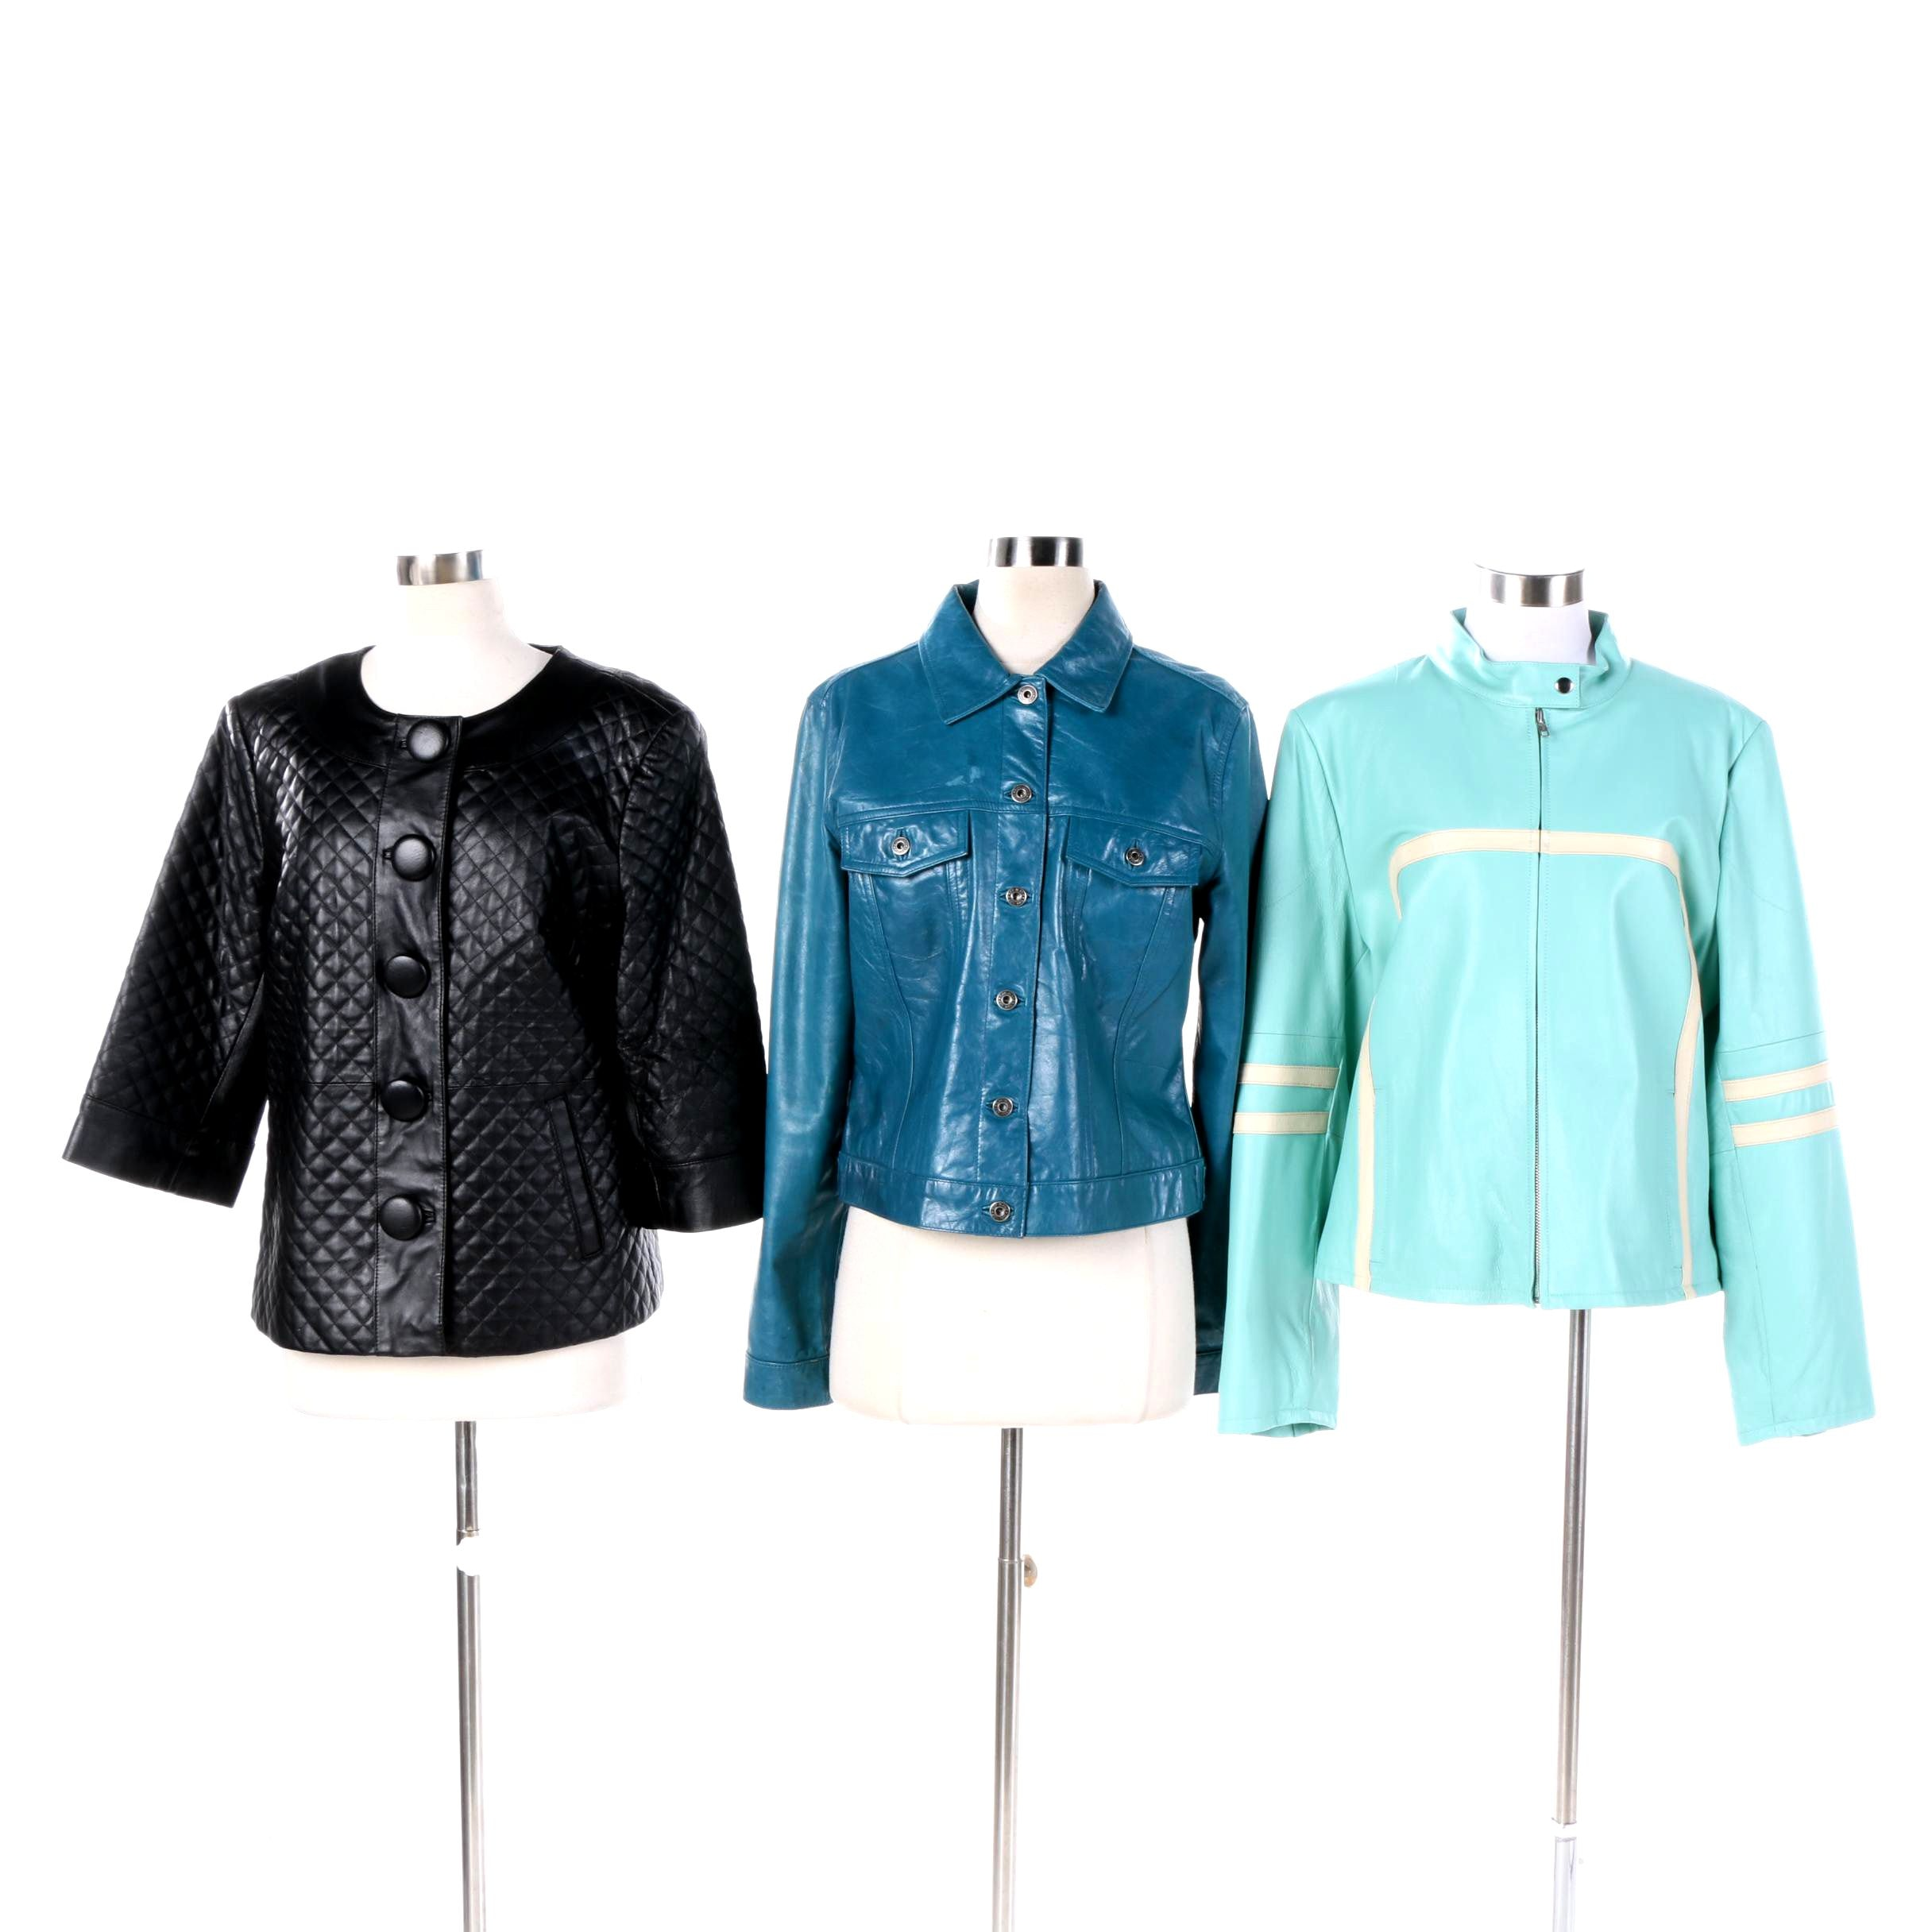 Women's Leather Jackets Including Gap, Terry Lewis, and Wilsons Leather